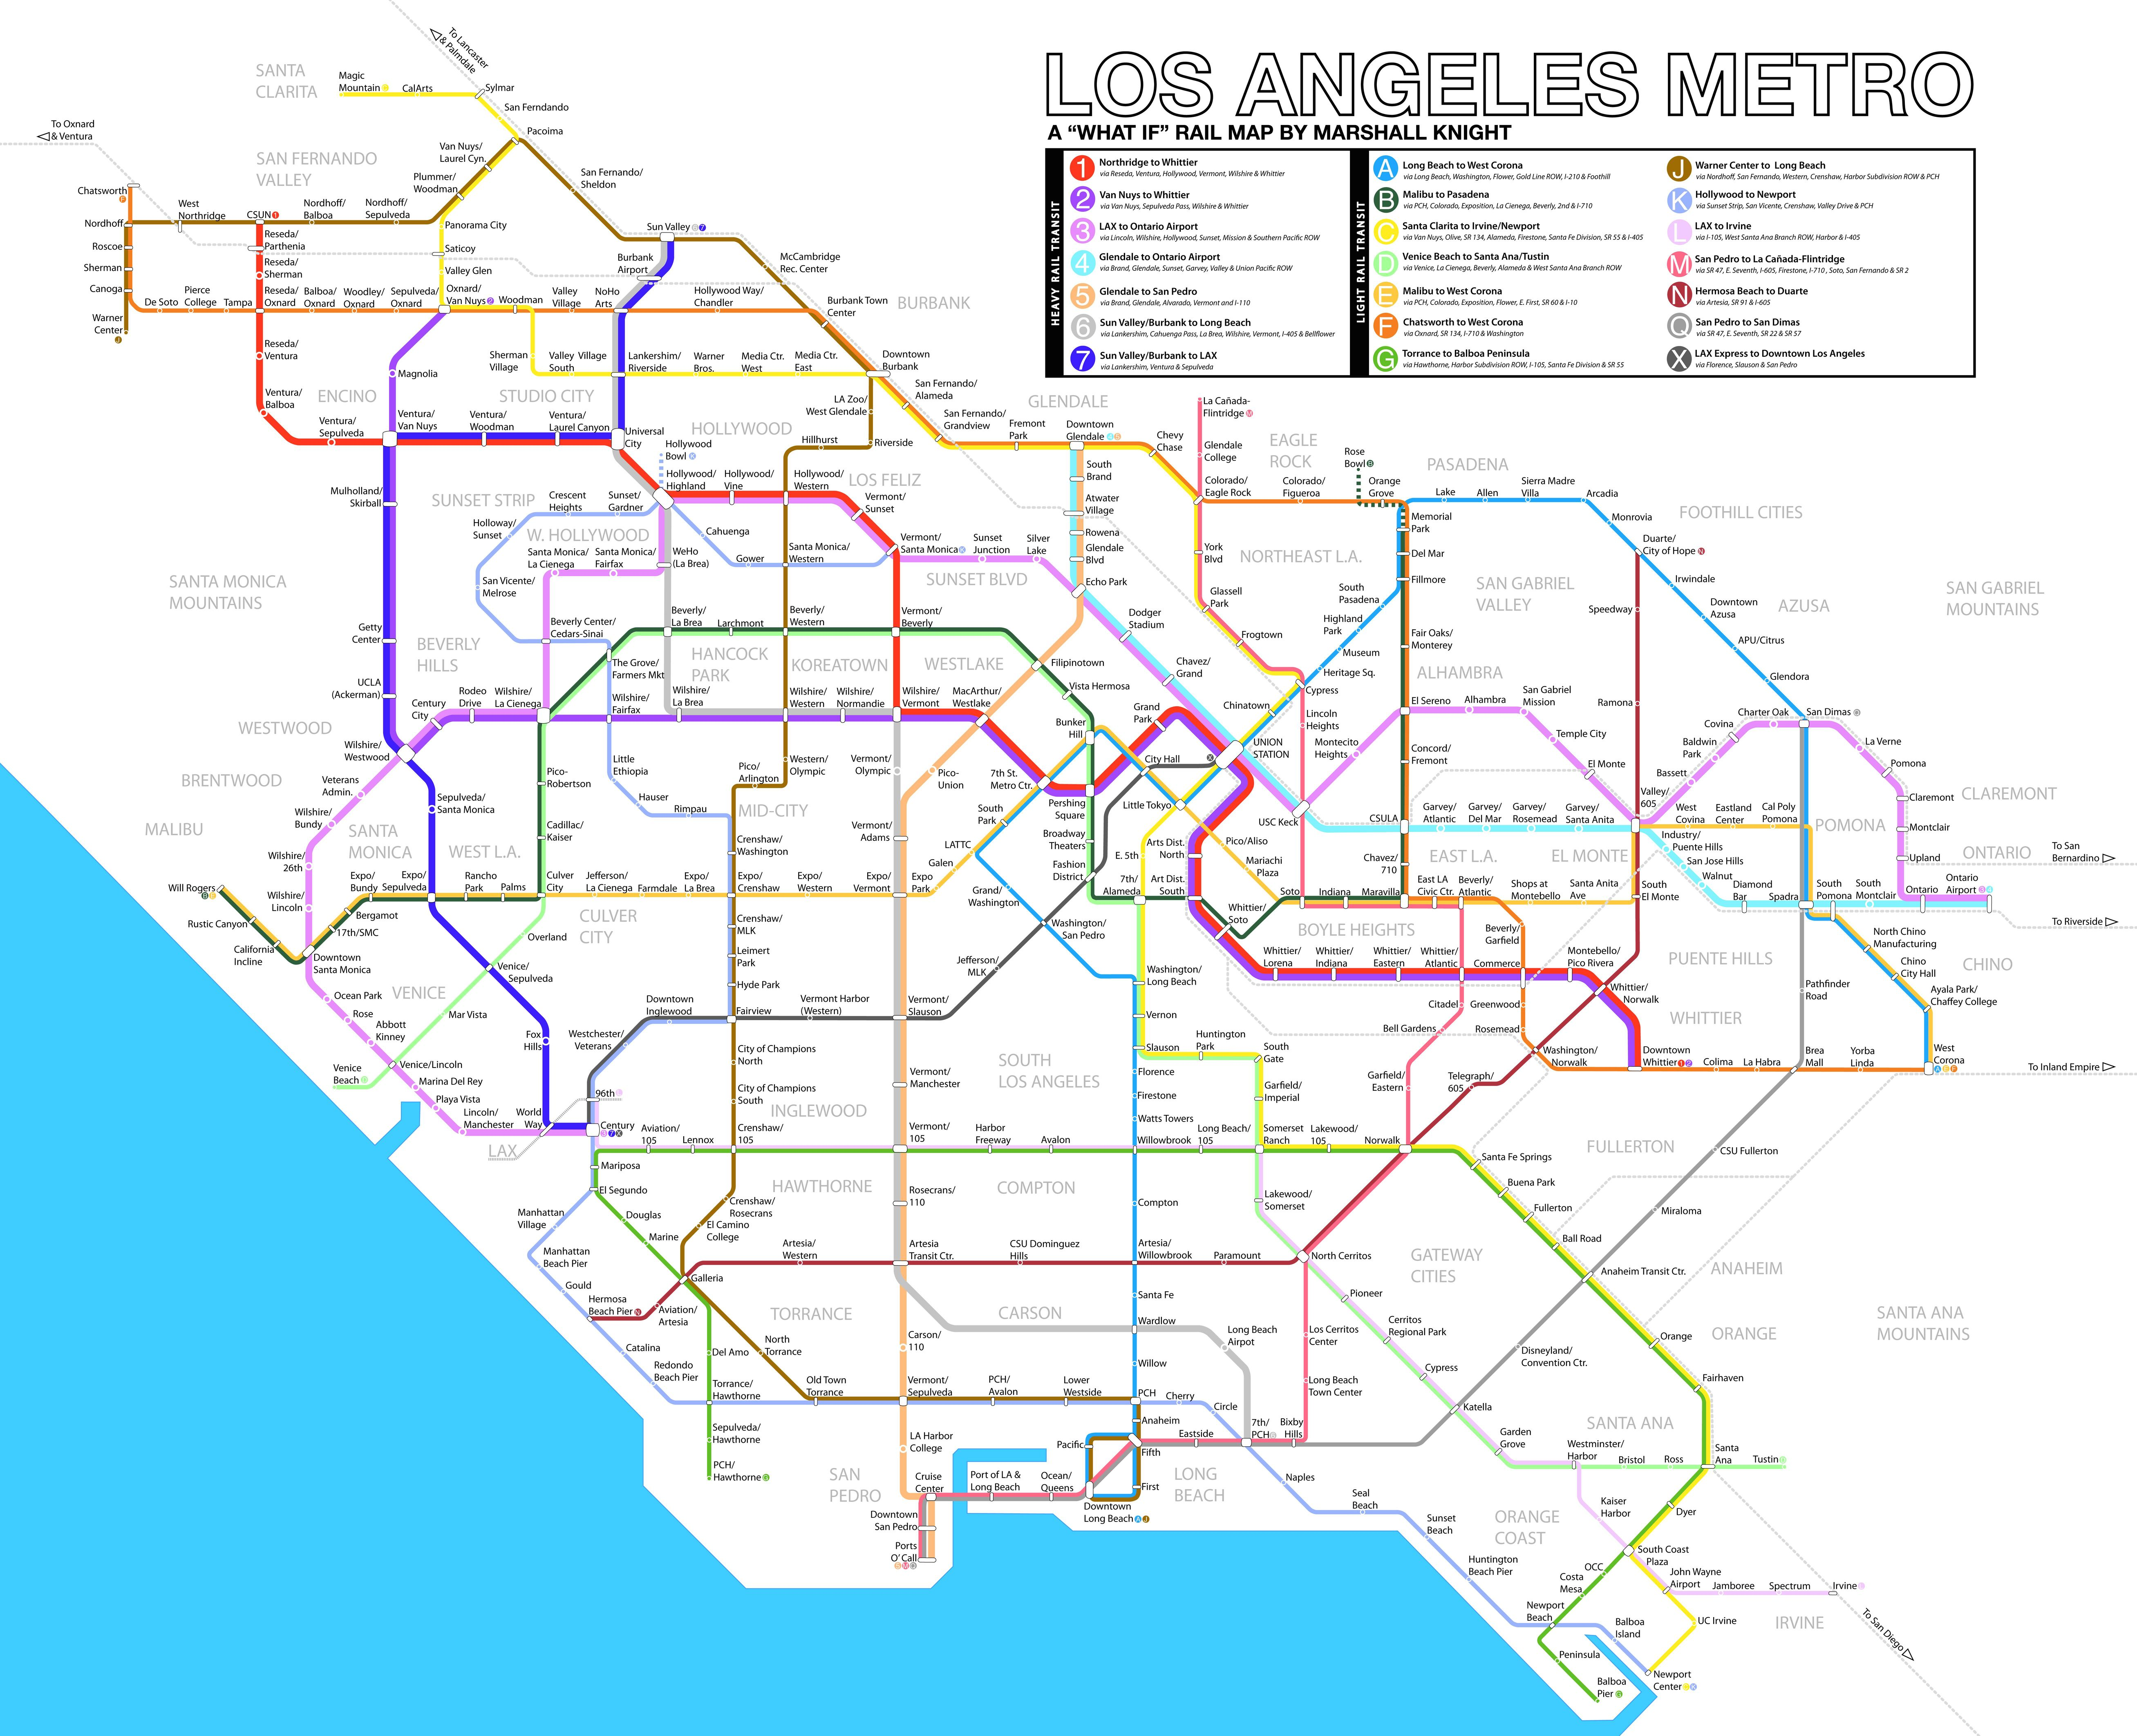 Los Angeles What If Metro Rail Map UPDATED With Feedback By - Los angeles metro expansion map